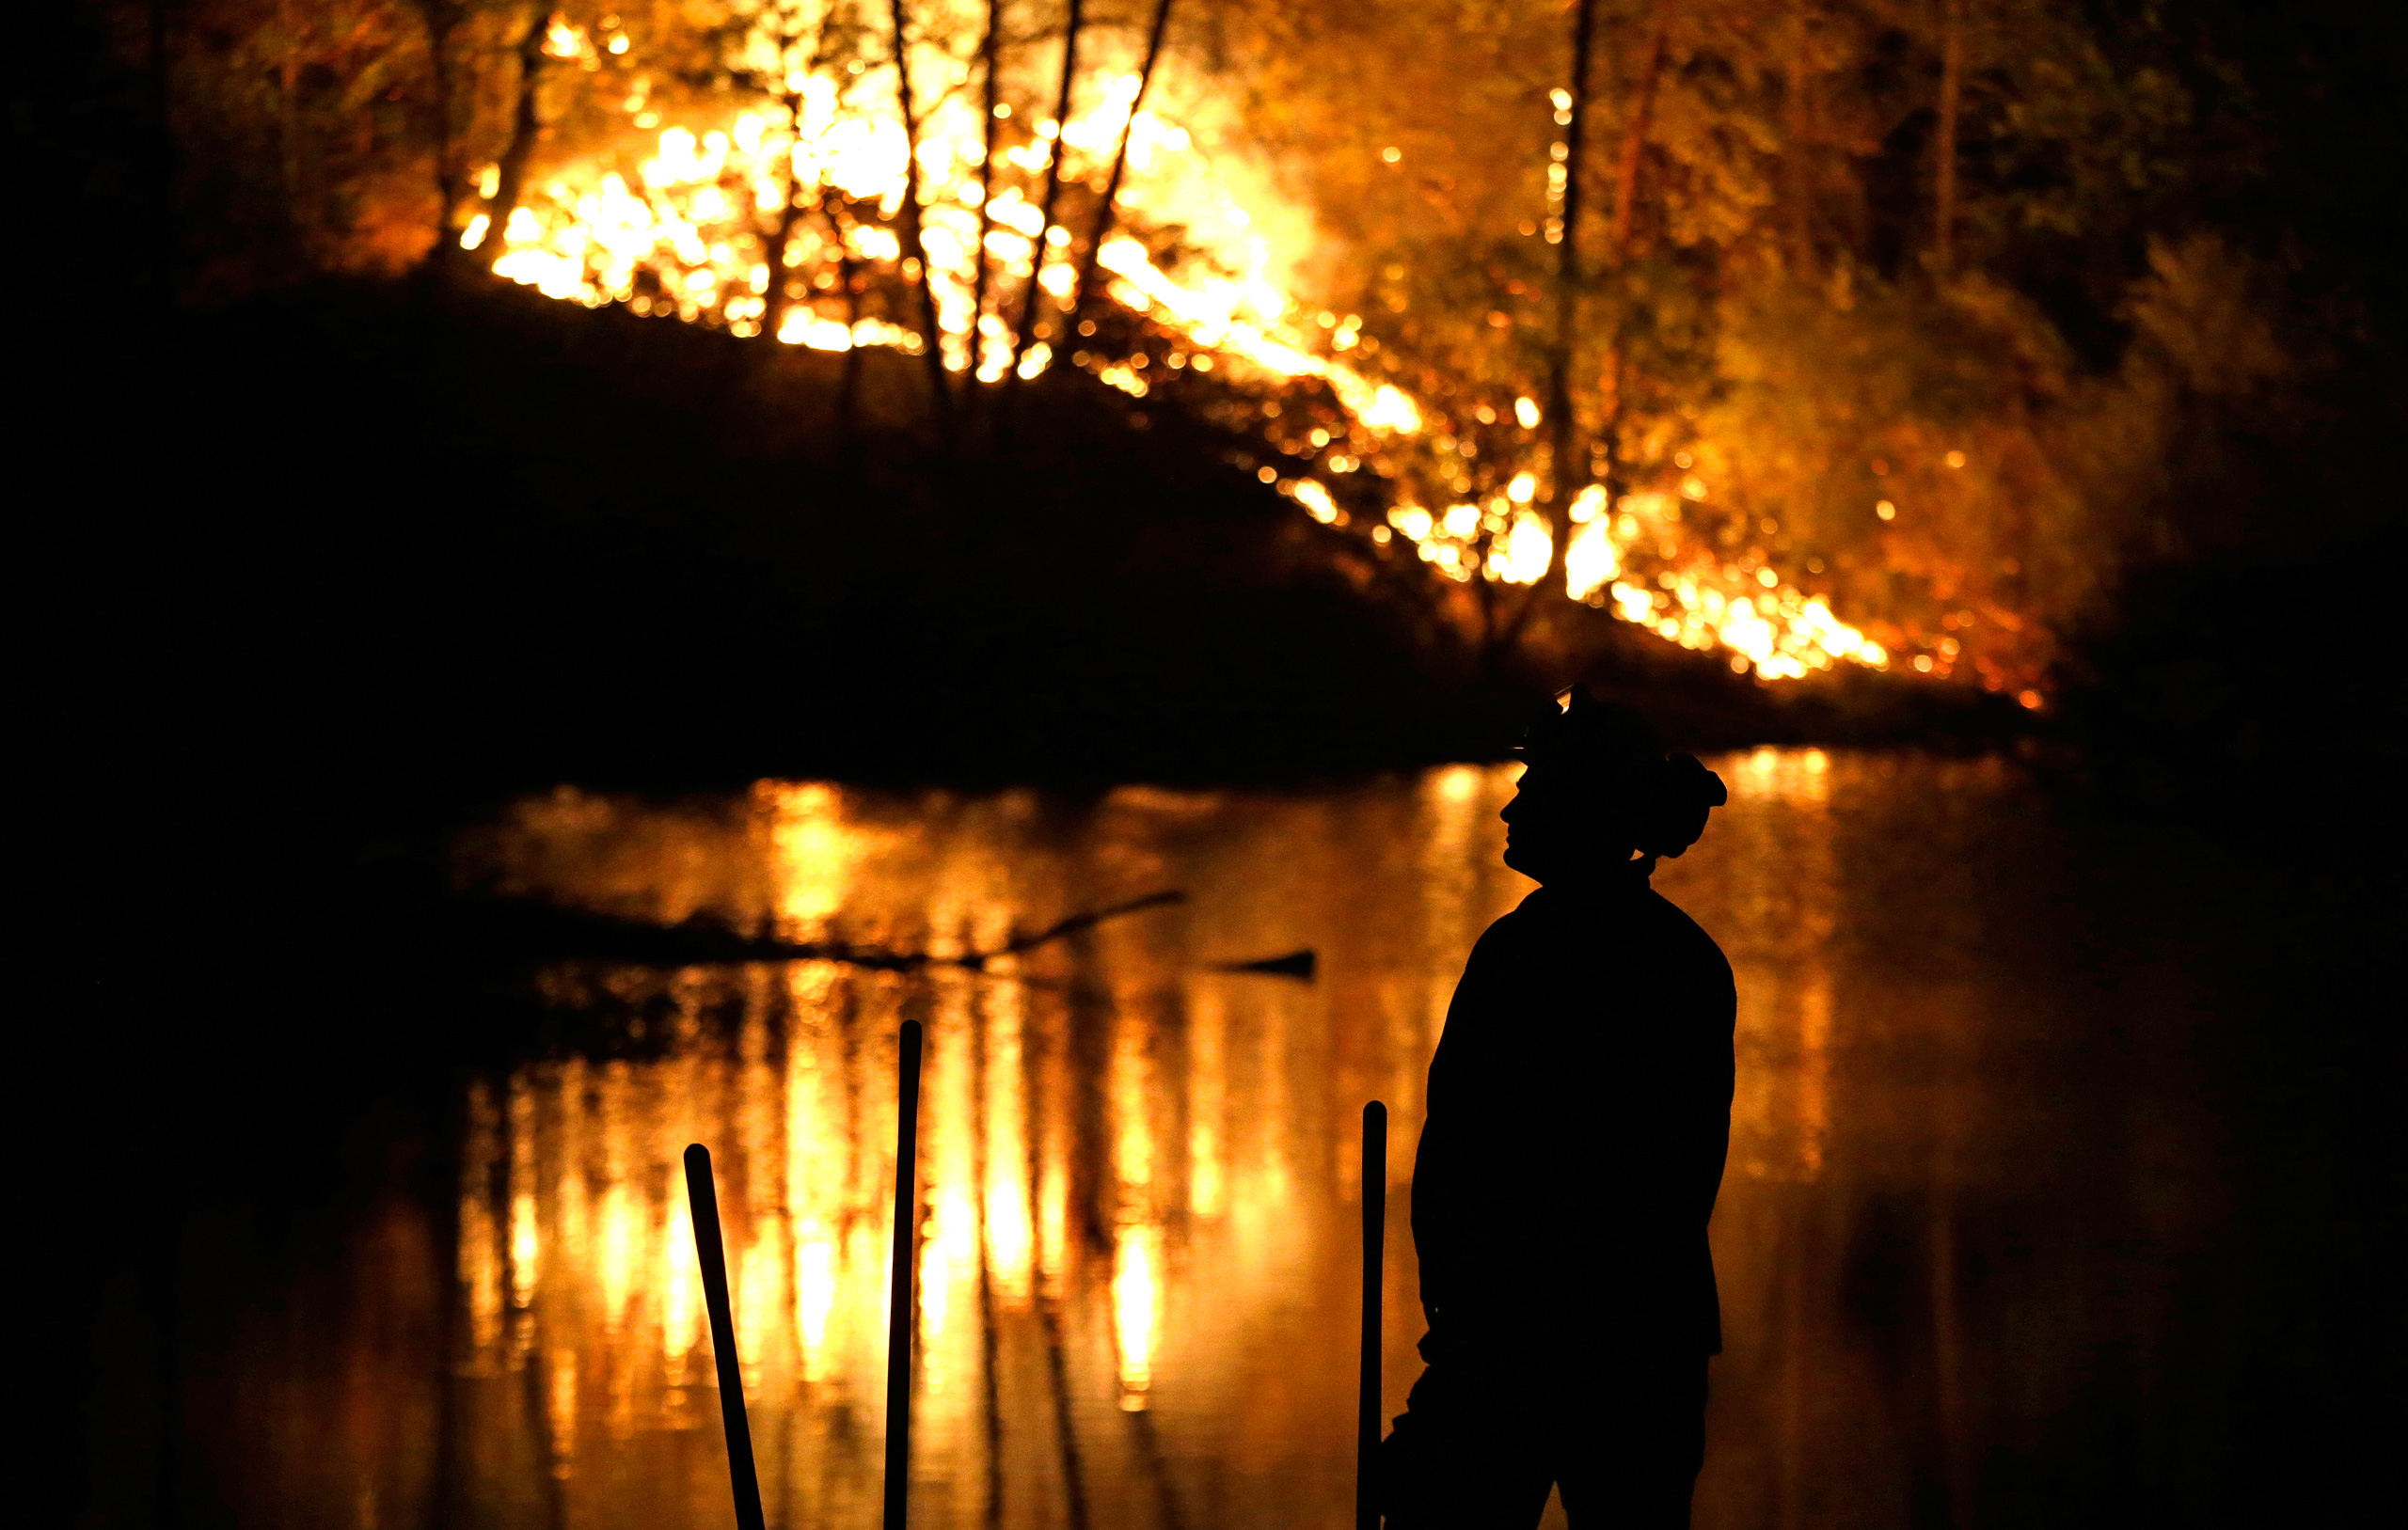 A firefighter stands near a wildfire in Middletown, Calif., on Sept. 13, 2015.